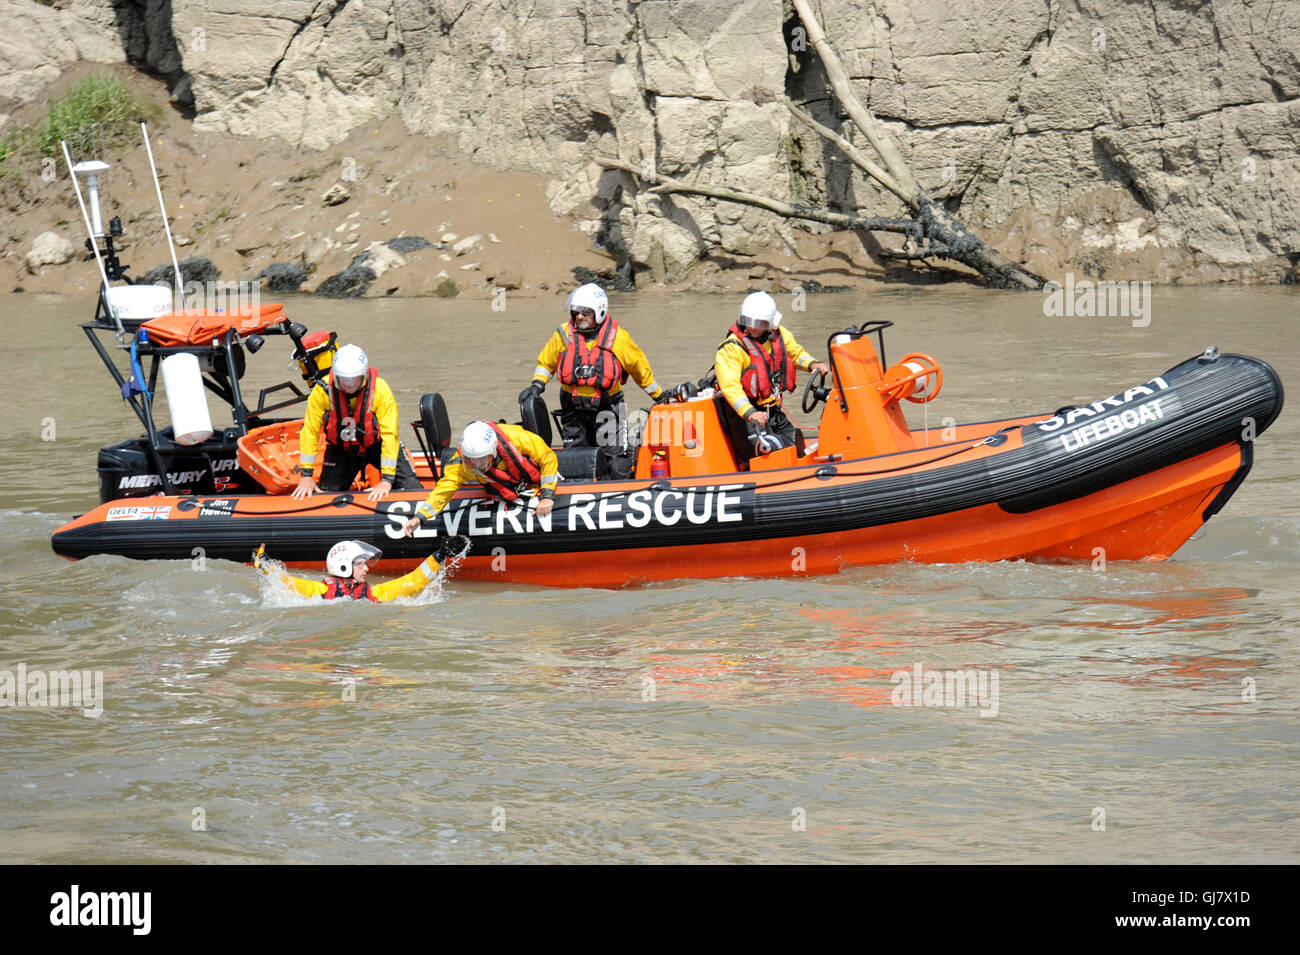 Severn Area Rescue Association SARA Lifeboat exercise on the River Wye in Chepstow Wales UK - Stock Image